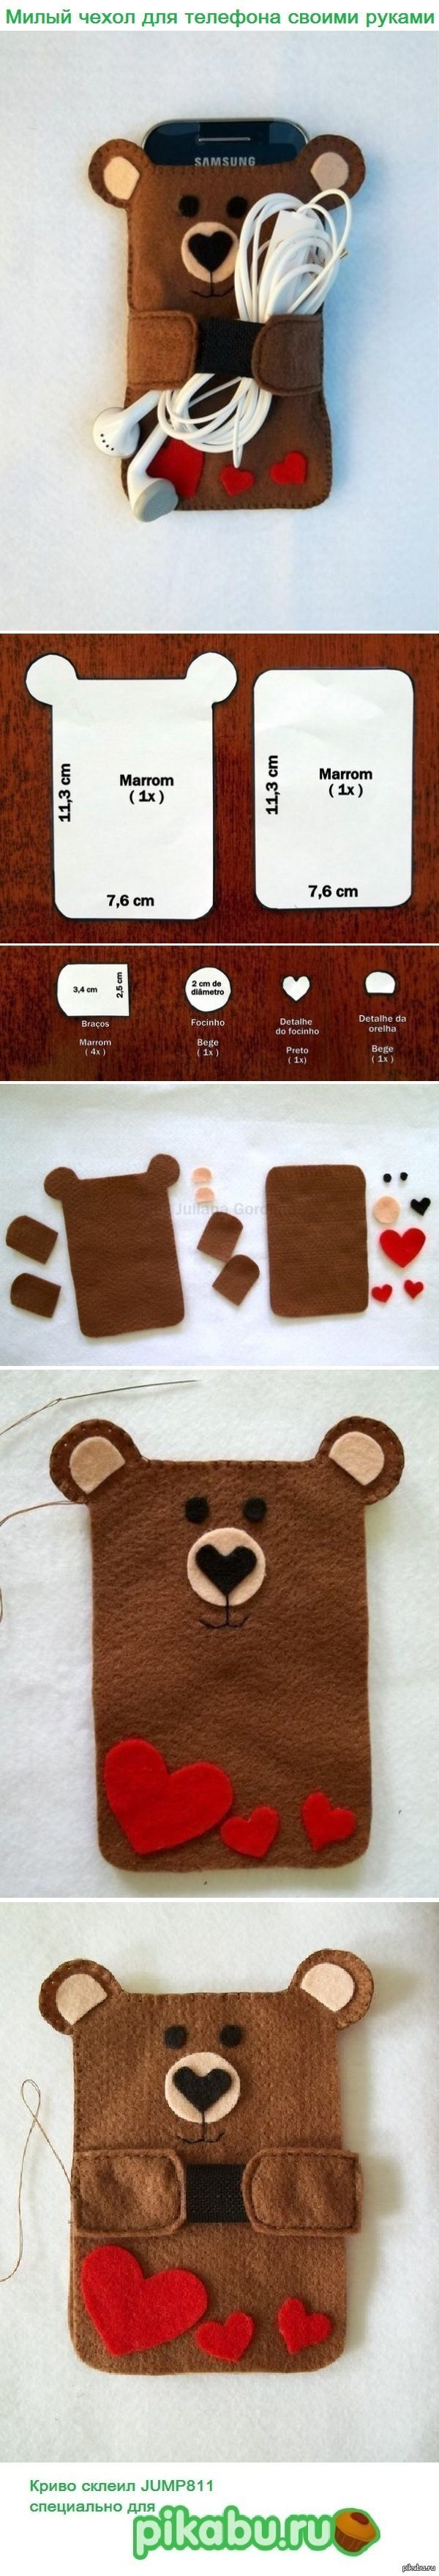 Cute Teddy Bear Smartphone / Cellphone holder :)